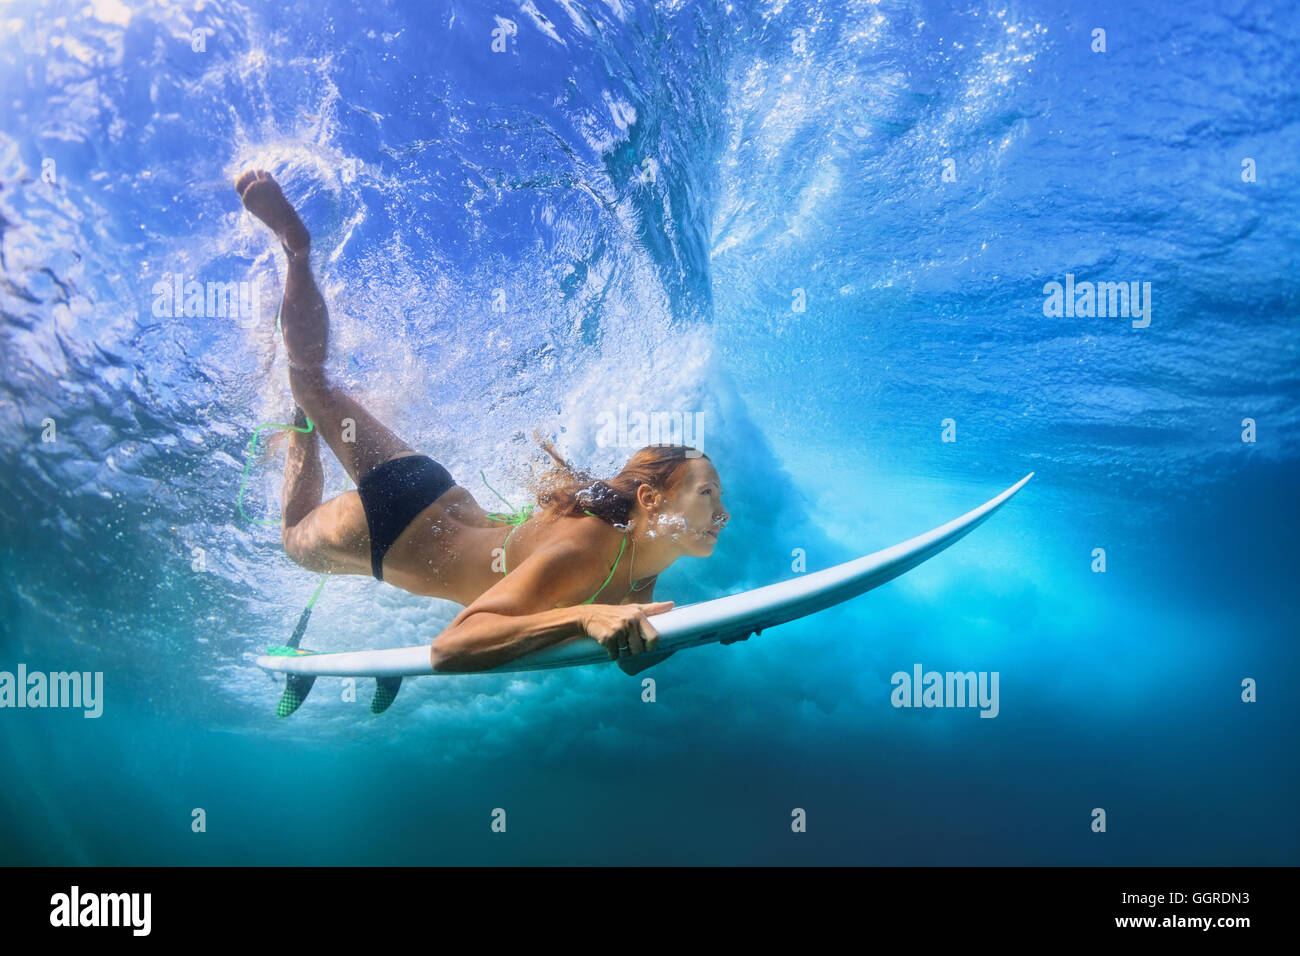 Young active girl in bikini in action - surfer with surf board dive underwater under breaking big ocean wave. school - Stock Image